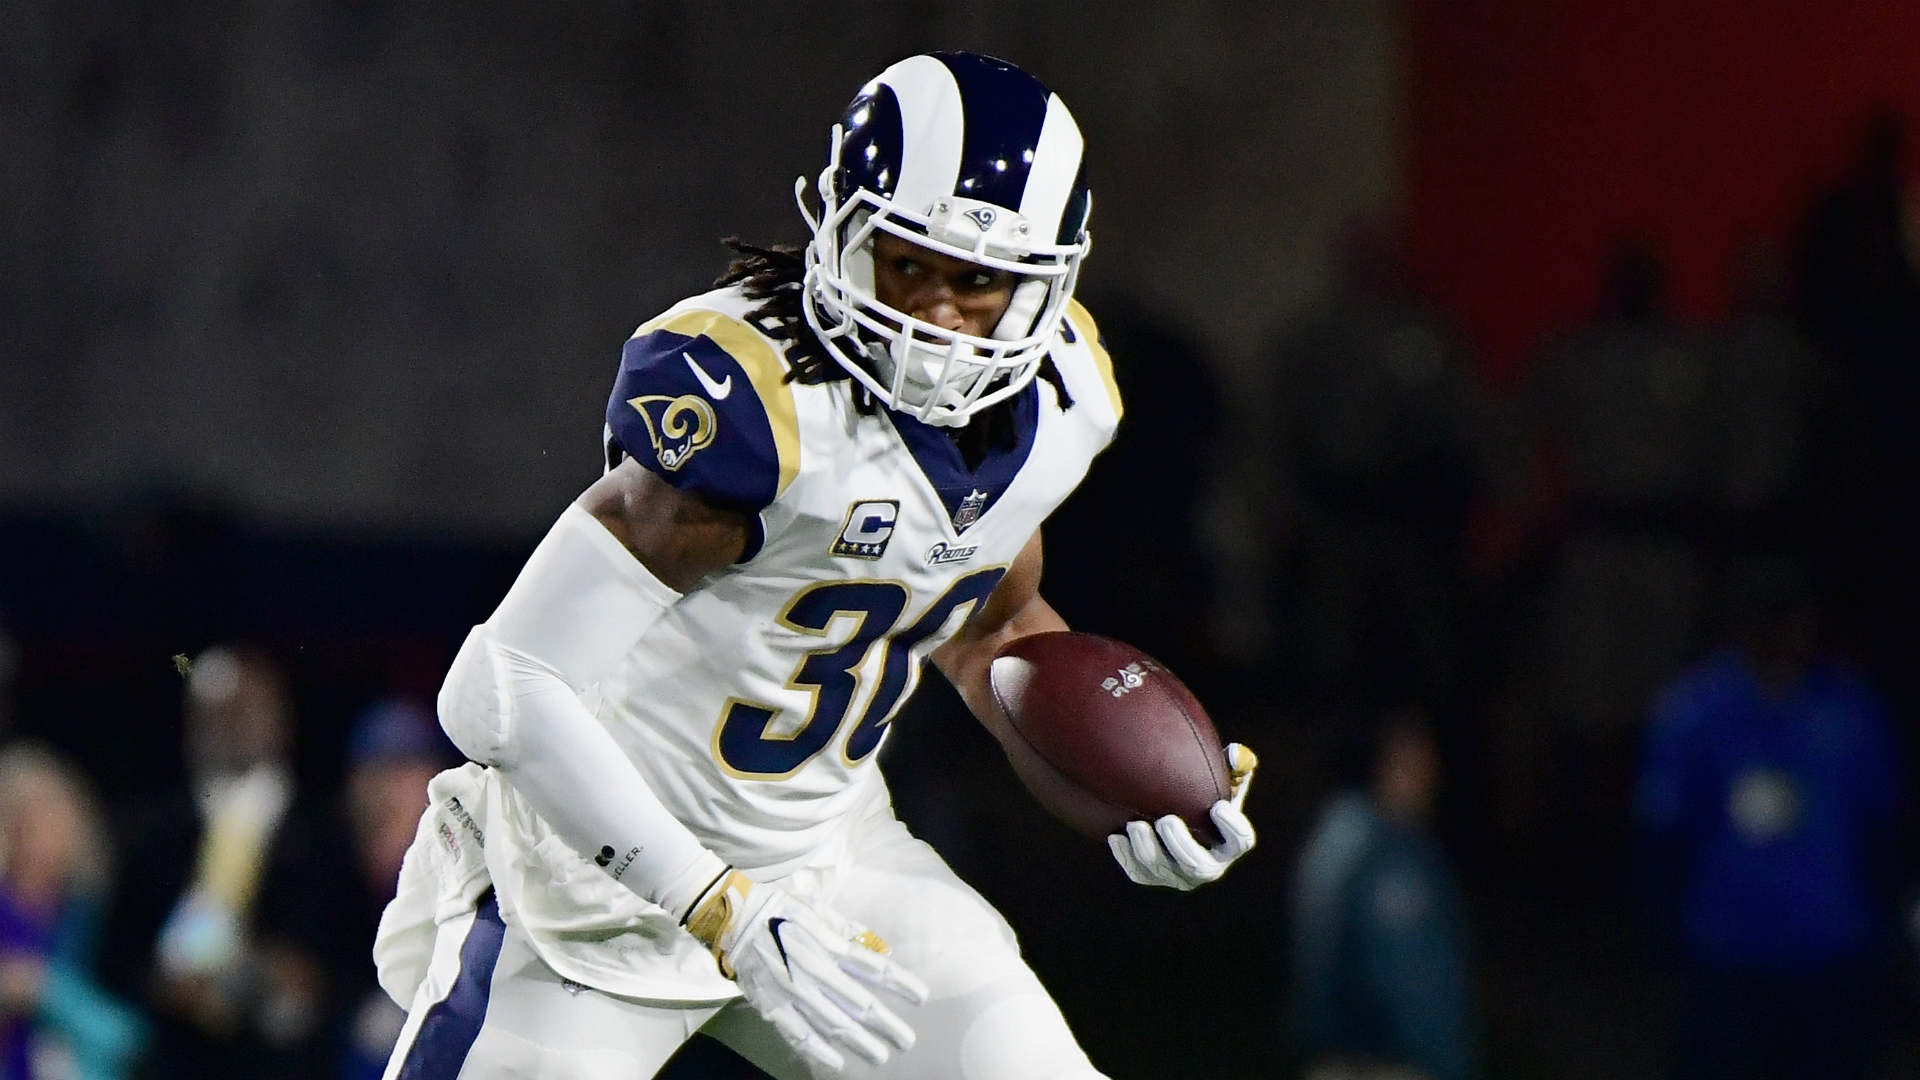 NFL Honors: Rams RB Todd Gurley named Offensive Player of the Year  NFL  Sporting News